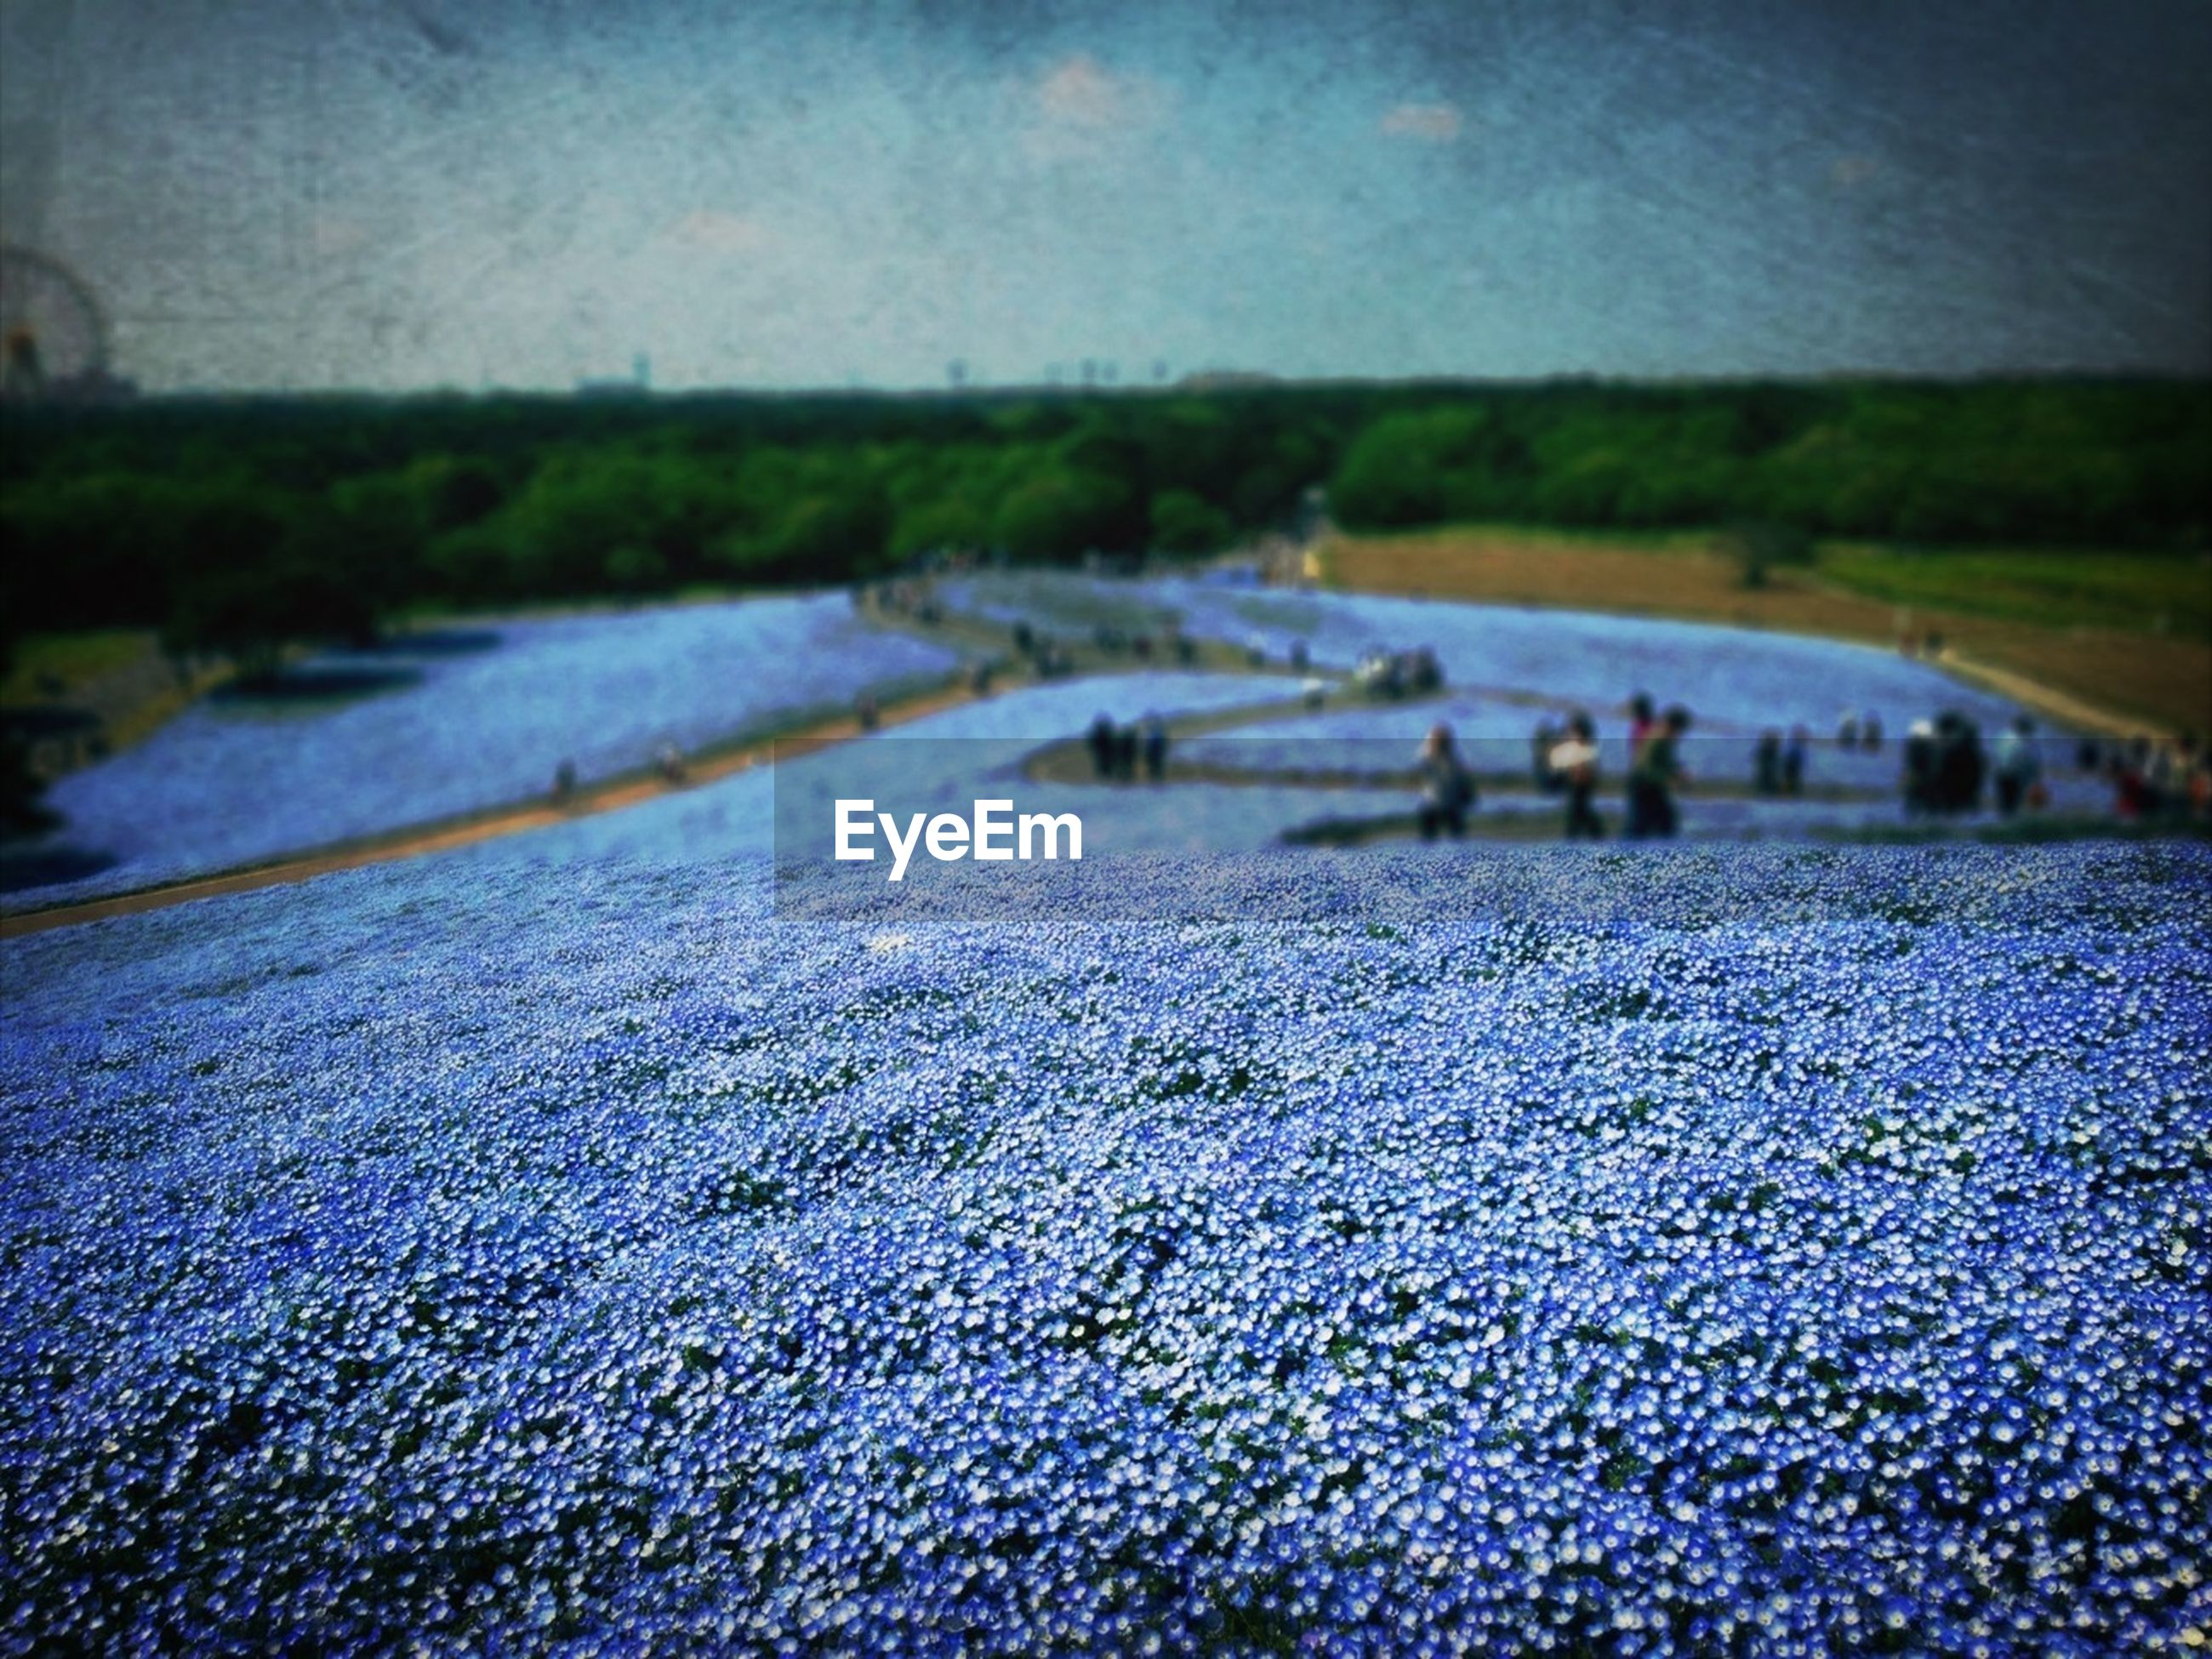 surface level, selective focus, flower, nature, water, focus on foreground, fragility, beauty in nature, day, outdoors, field, blue, street, no people, tranquility, close-up, road, park - man made space, purple, plant